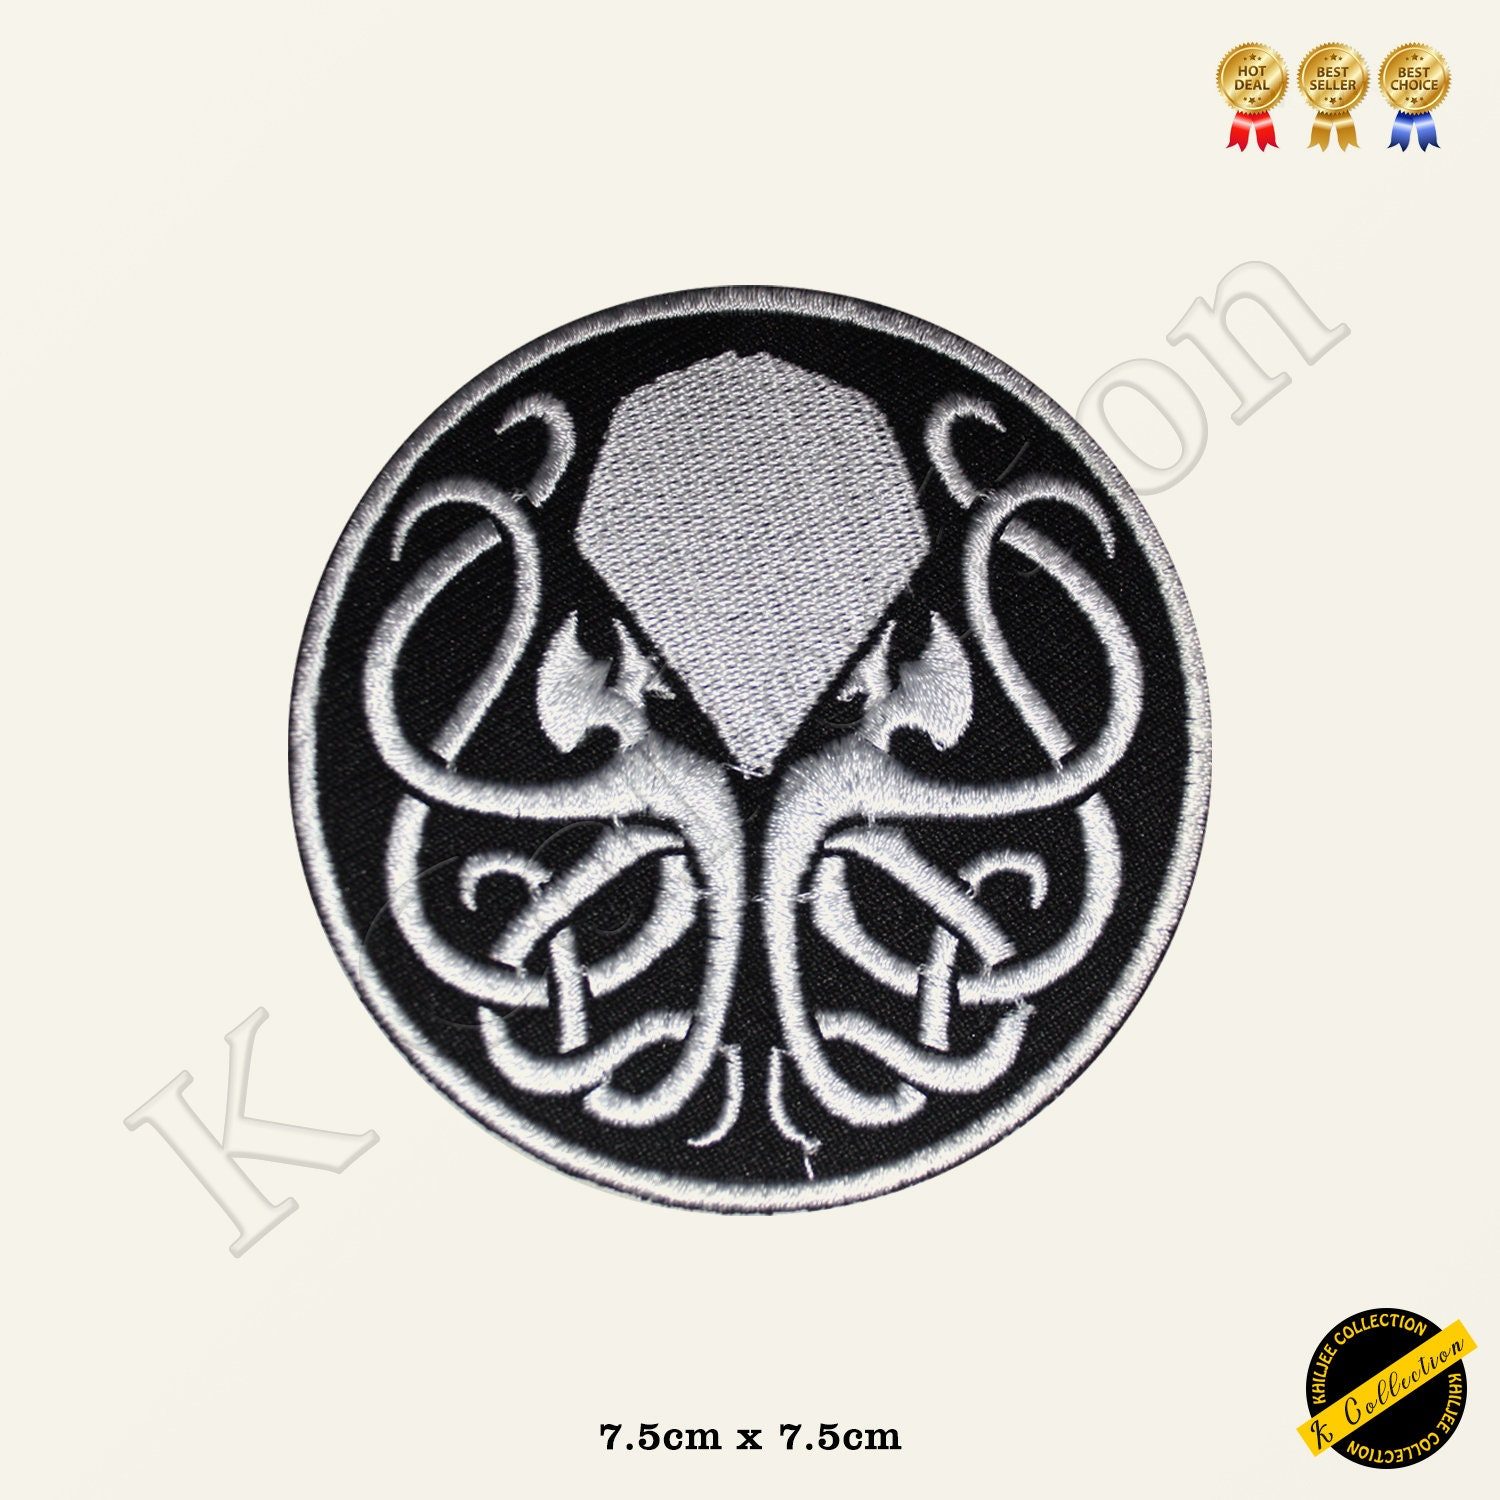 Cthulhu Love Craft Punk Jelly Fish Super Hero Movie Comics Embroidered Iron  on Sew On Patch Badge